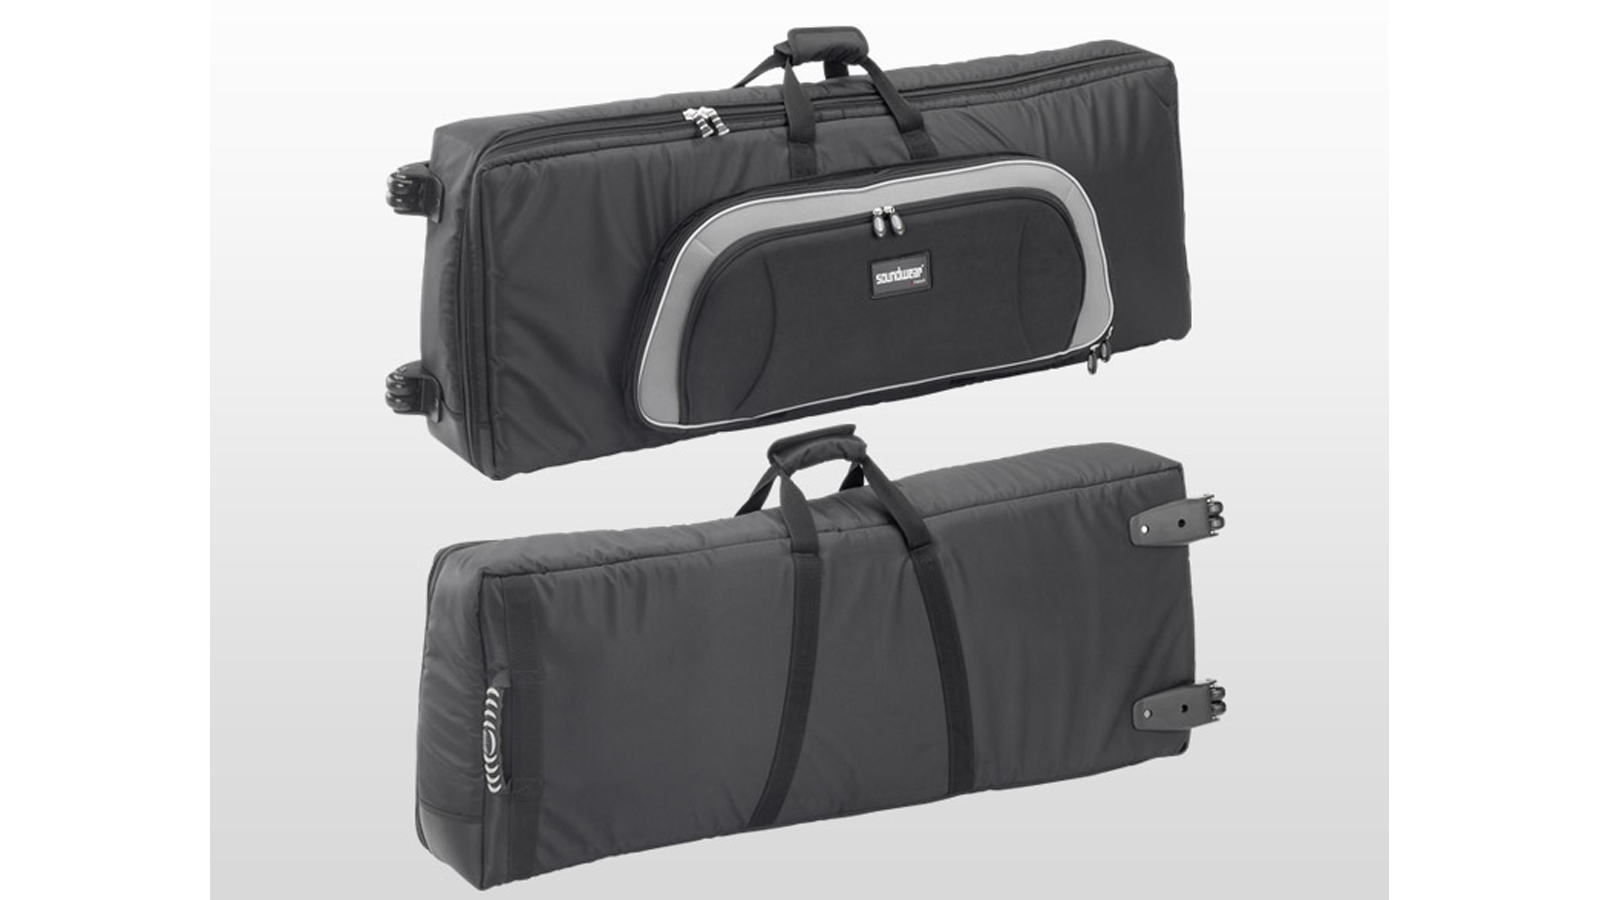 Soundwear Keyboard Bag Professional 148 x 51 x 19 cm